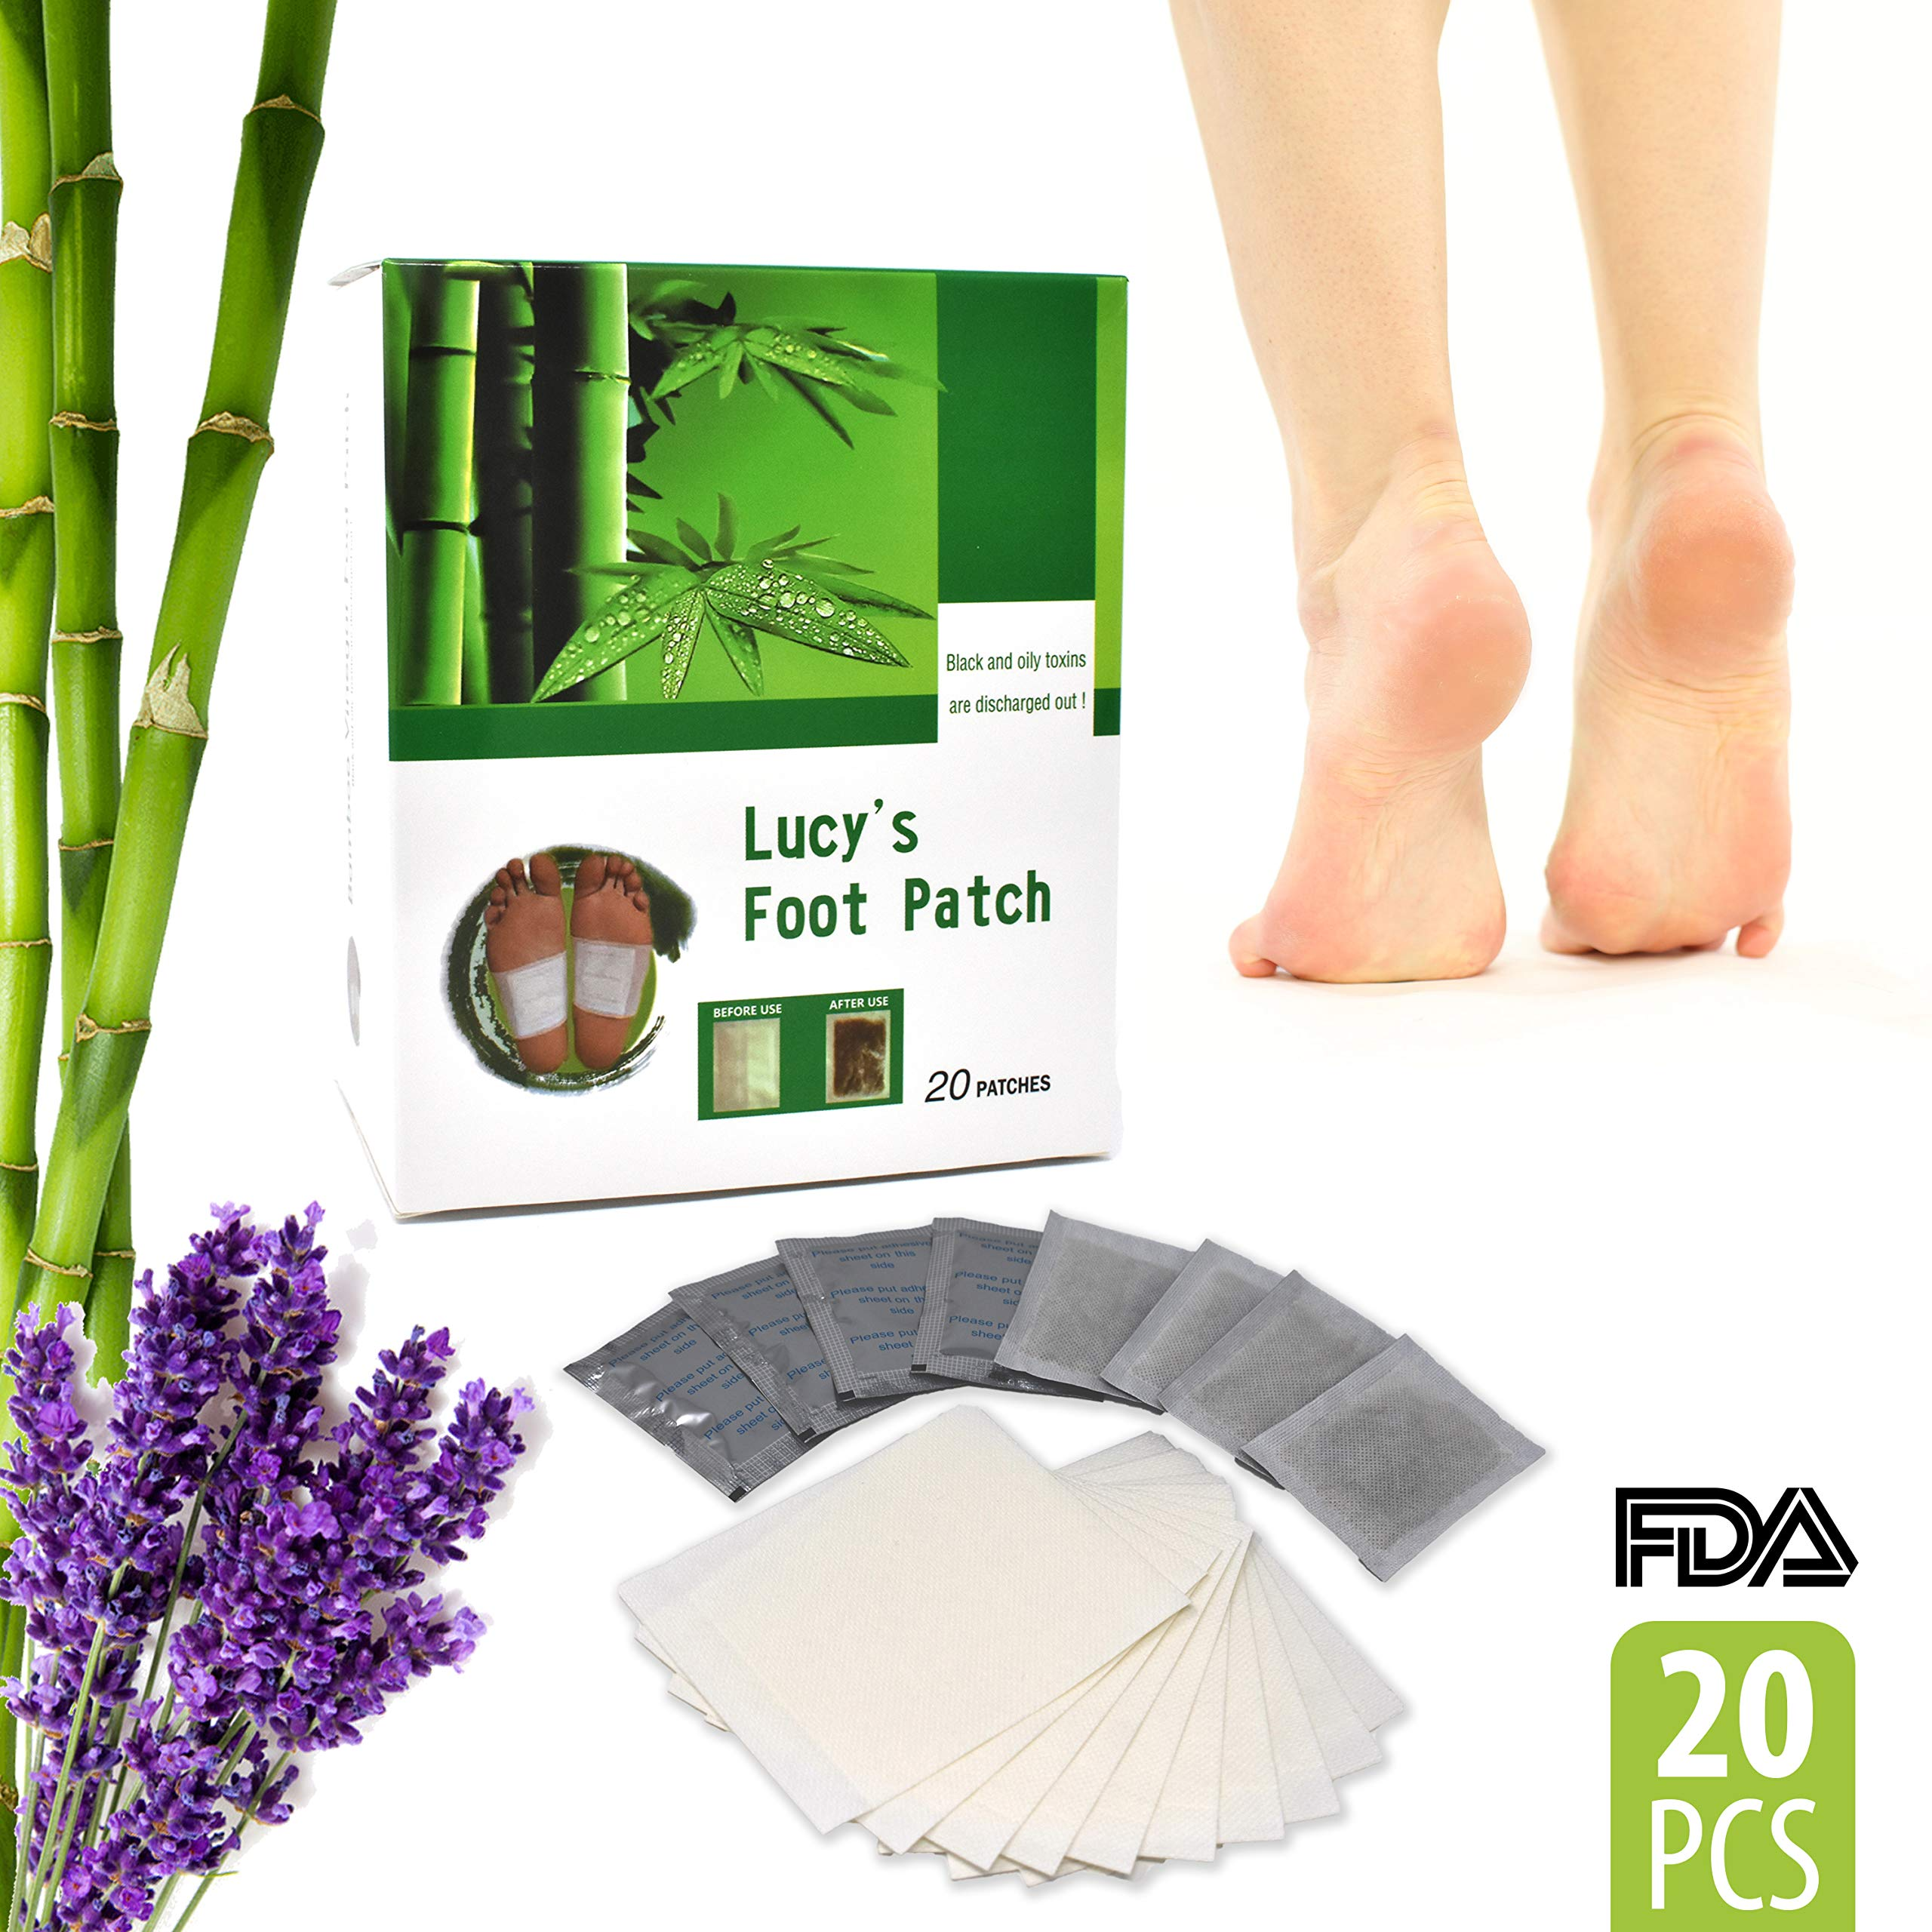 Premium Tiny Helper Foot Pads All Natural and Organic - 20 Premium Bamboo Essential Oil Pads - Remove Impurities - Rapid Pain Relief & Foot Health - Fresh Scent Sleep Better - Give Your Body Relief